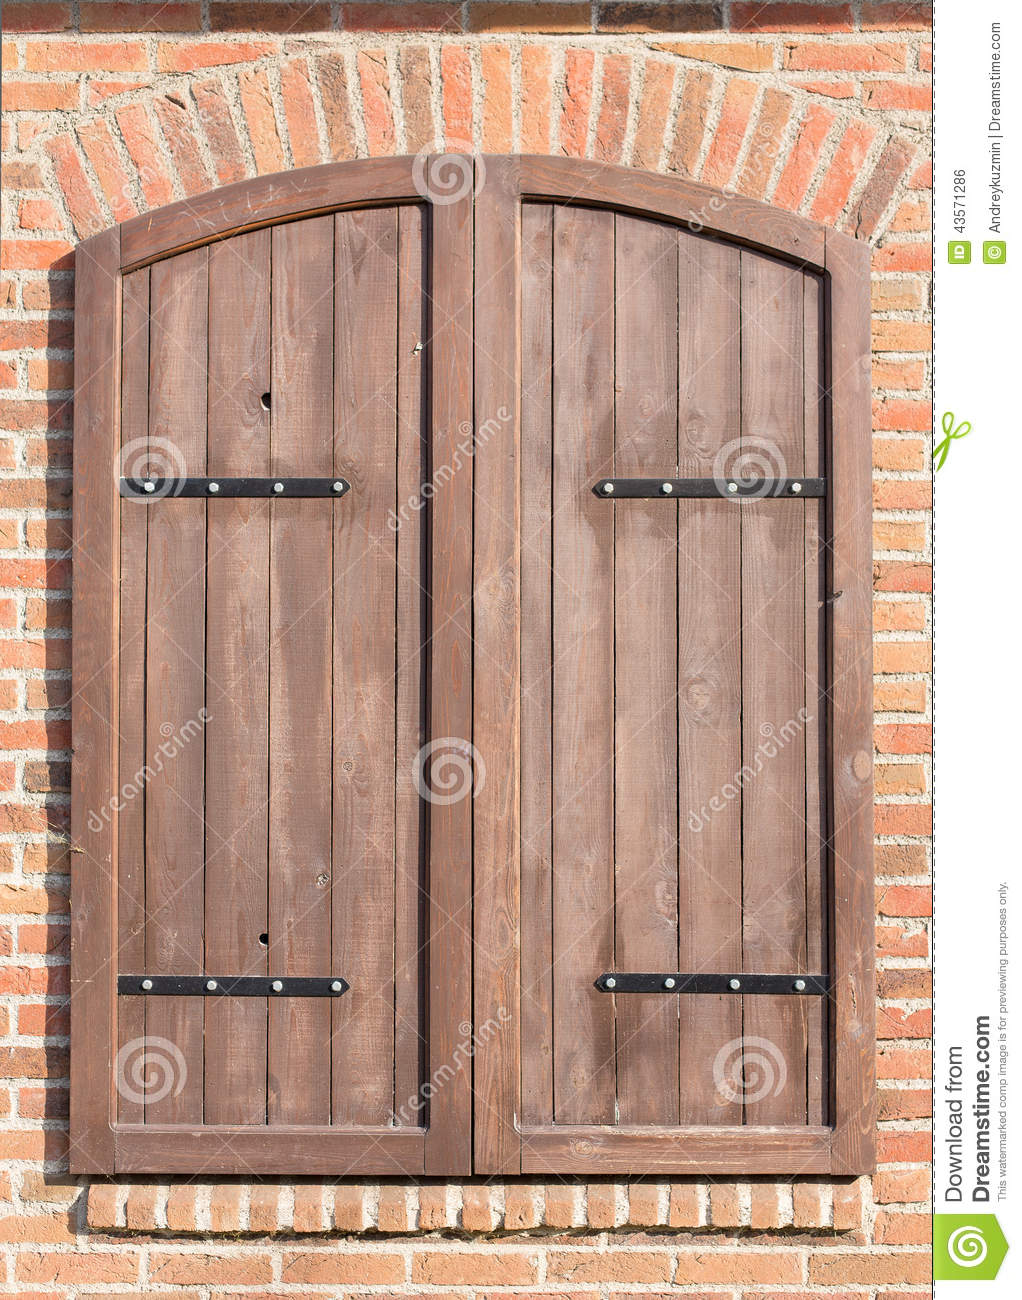 Wood Shutters Closed : Old closed window shutters stock photo image